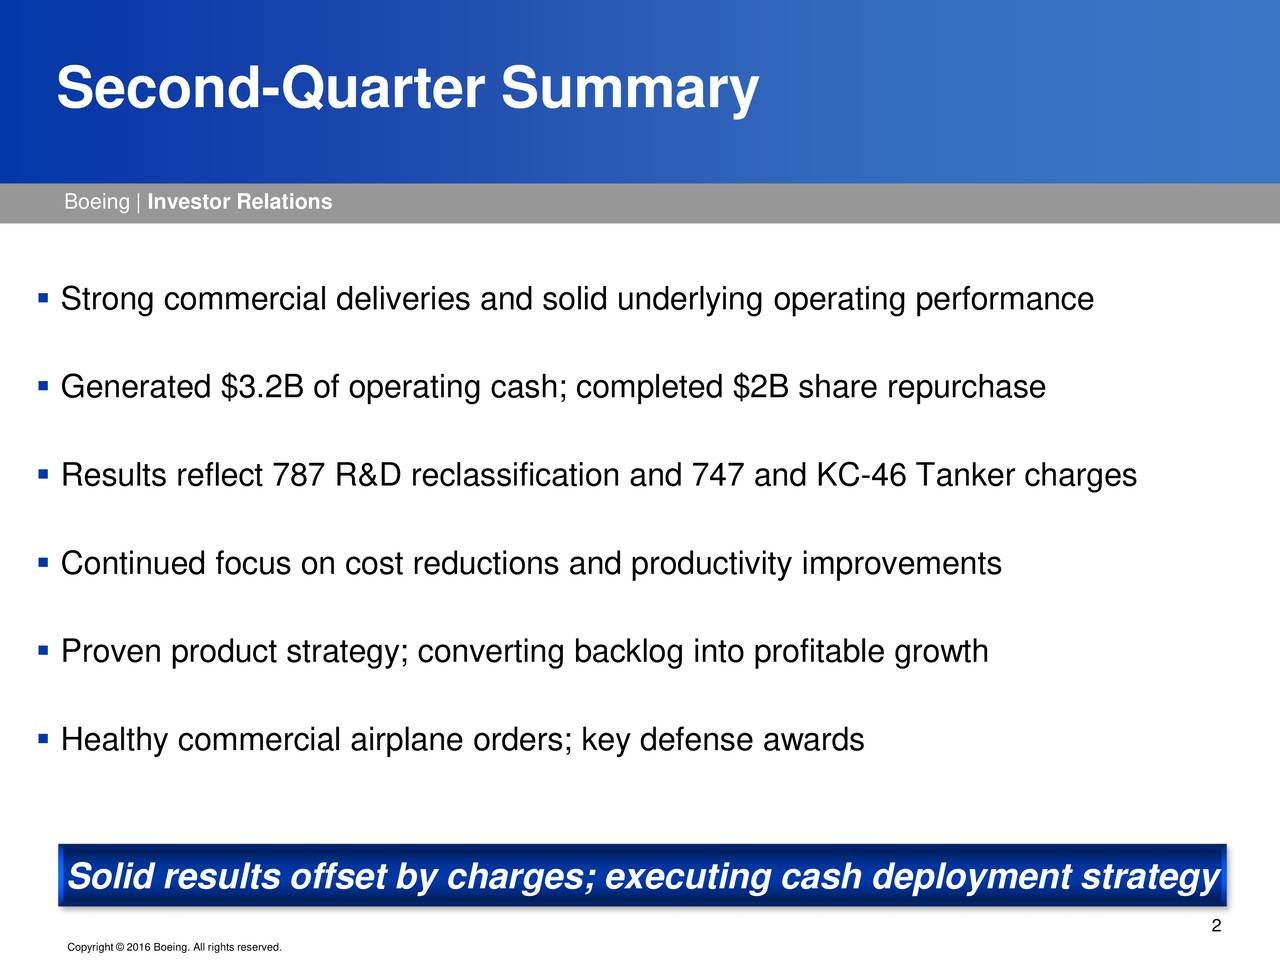 Boeing   Investor Relations Strong commercial deliveries and solid underlying operating performance Generated $3.2B of operating cash; completed $2B share repurchase Results reflect 787 R&D reclassification and 747 and KC-46 Tanker charges Continued focus on cost reductions and productivity improvements Proven product strategy; converting backlog into profitable growth Healthy commercial airplane orders; key defense awards Solid results offset by charges; executing cash deployment strategy 2